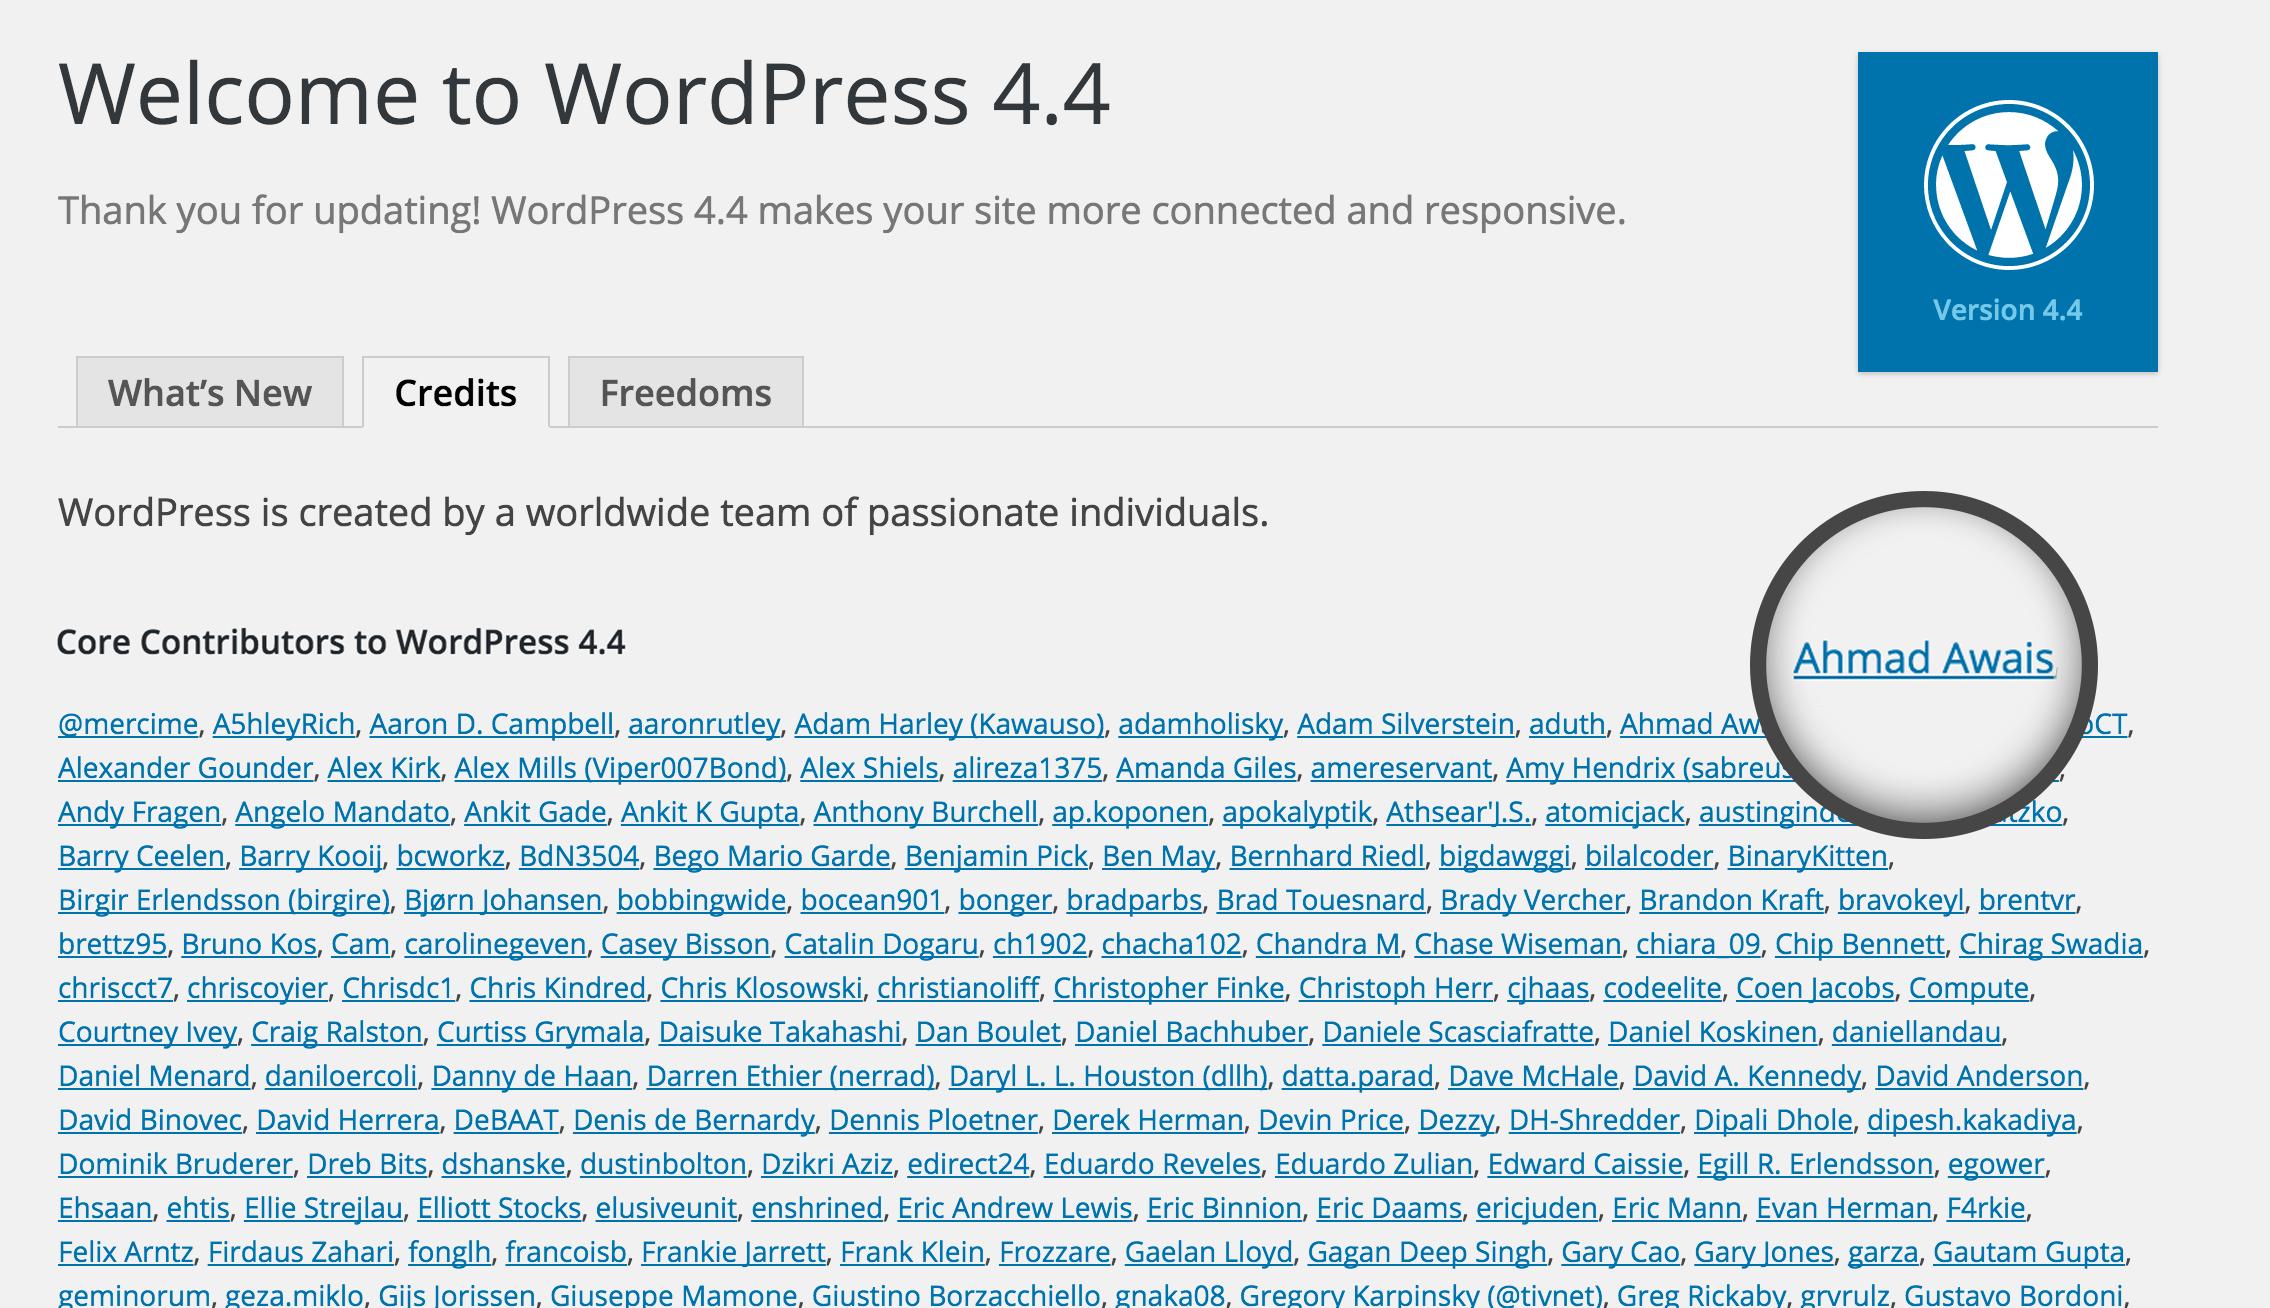 Ahmad Awais Core Contributor at WordPress 4.4